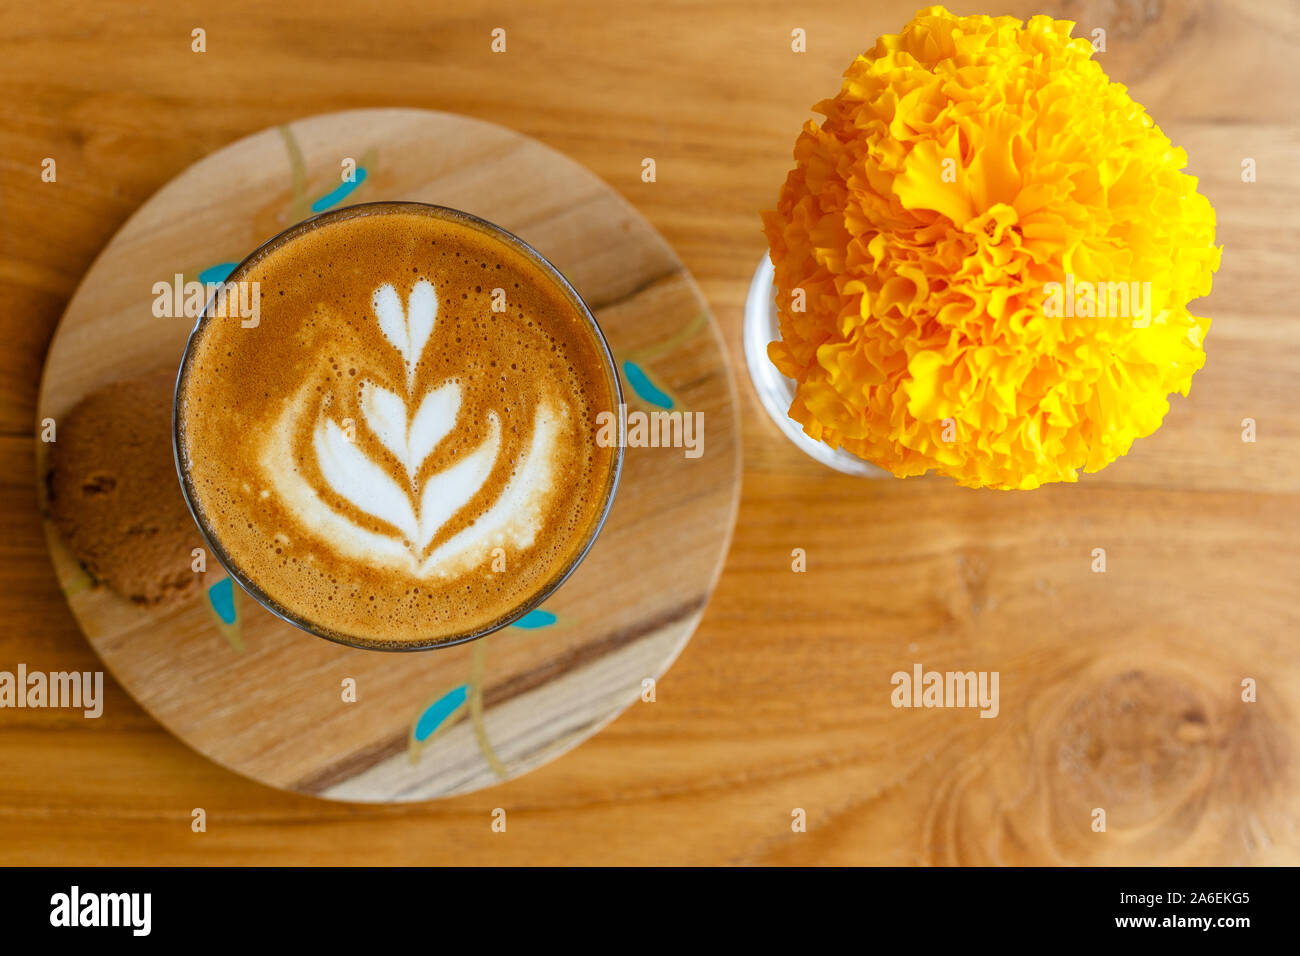 Cup of coffee piccolo in a wooden holder over wooden table in a cafe. Marigold flower in a glass. Top view. With space. Stock Photo